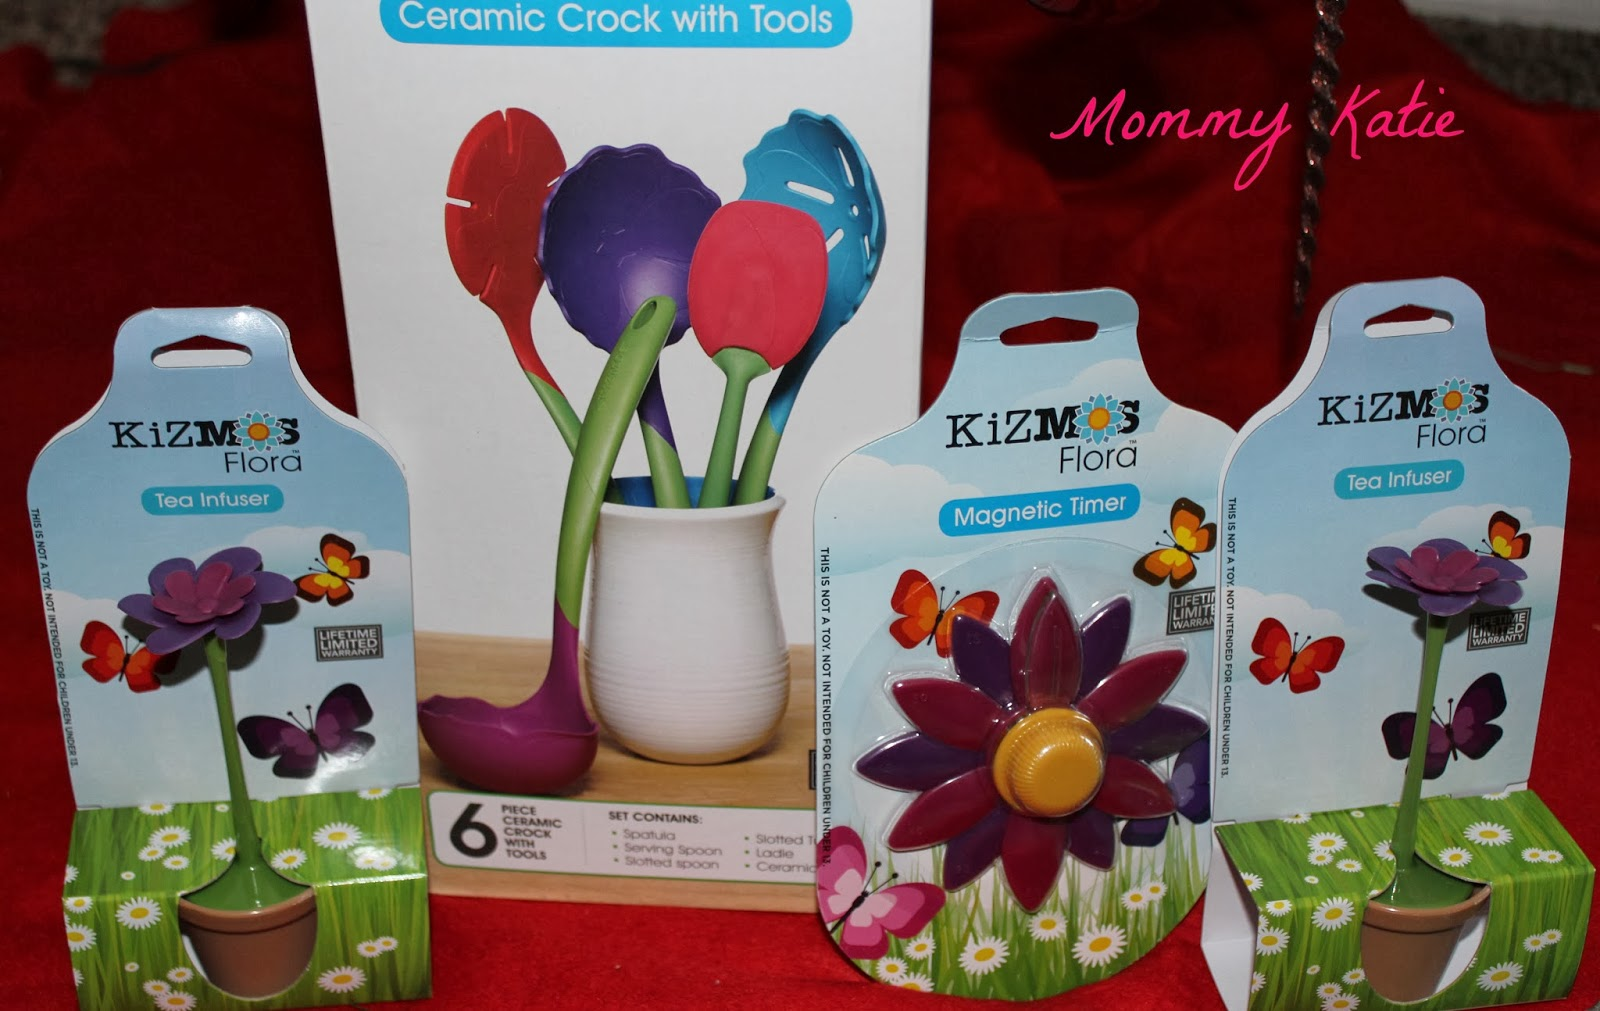 Cooking In The Kitchen This Holiday Season With Kids And Kizmos Okiedog Flower Power Cupid Tea Infusers Can Enjoy Making A Cup Of Fresh Hot To Share Grandma Grandpa Over Holidays When They Use Their Magnetic